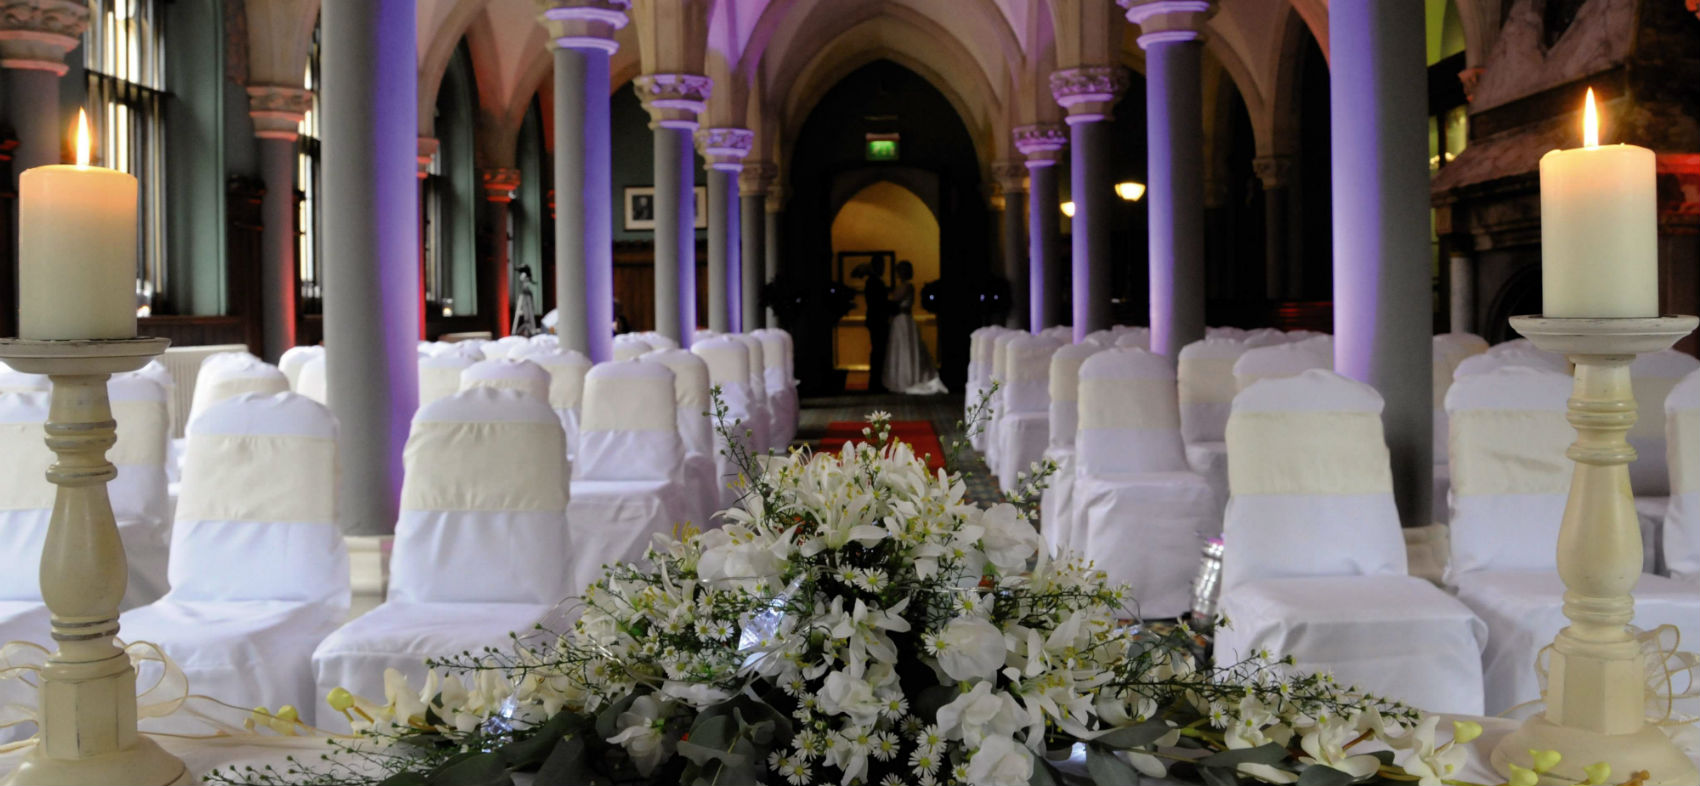 Wotton House, Dorking – Draping & Uplighting